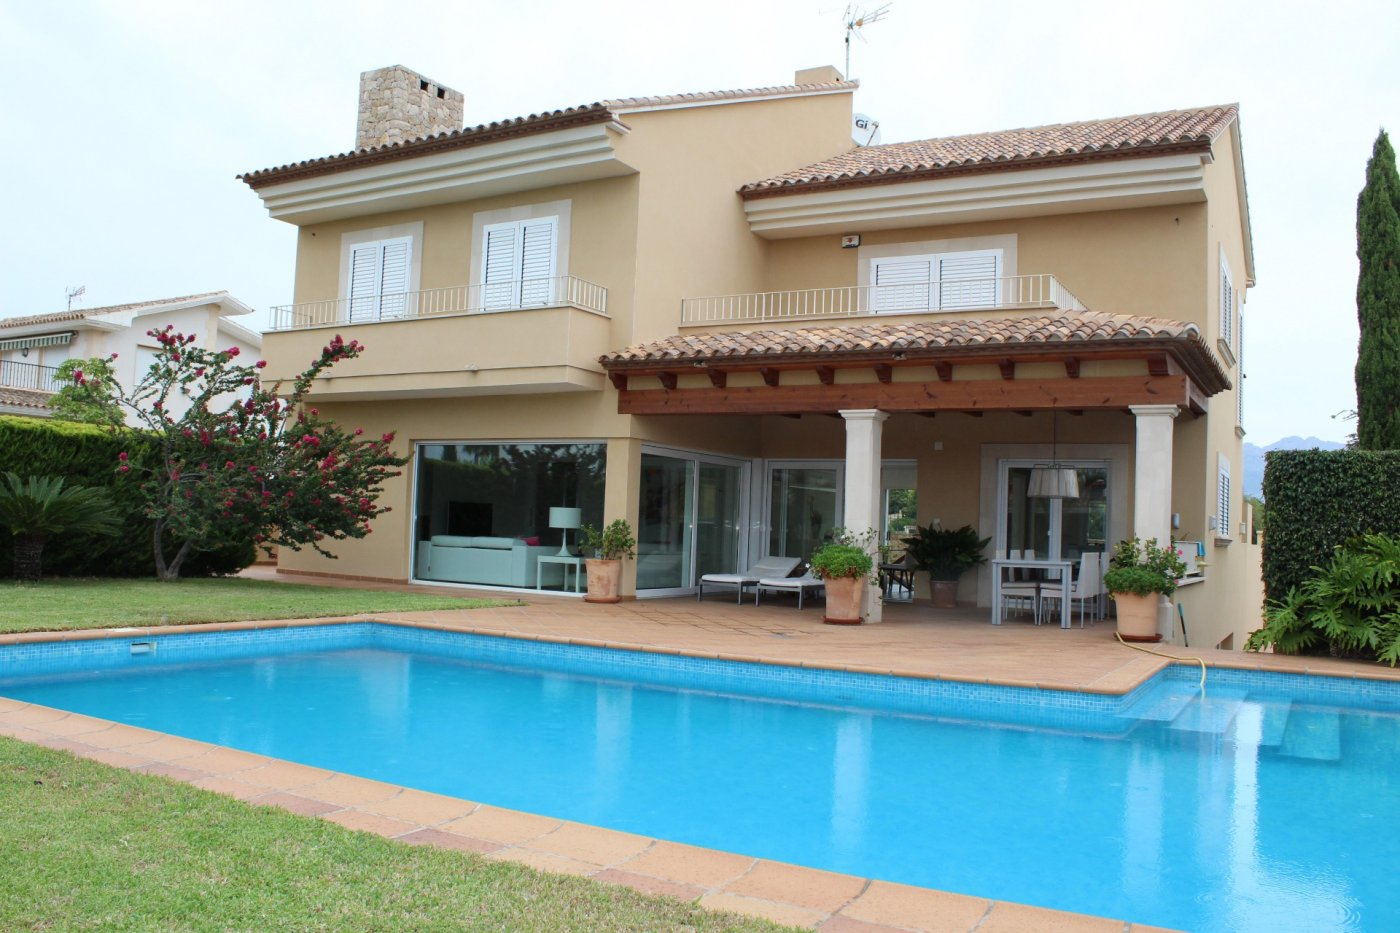 Villa for sale in Arabi, Alfaz del Pi